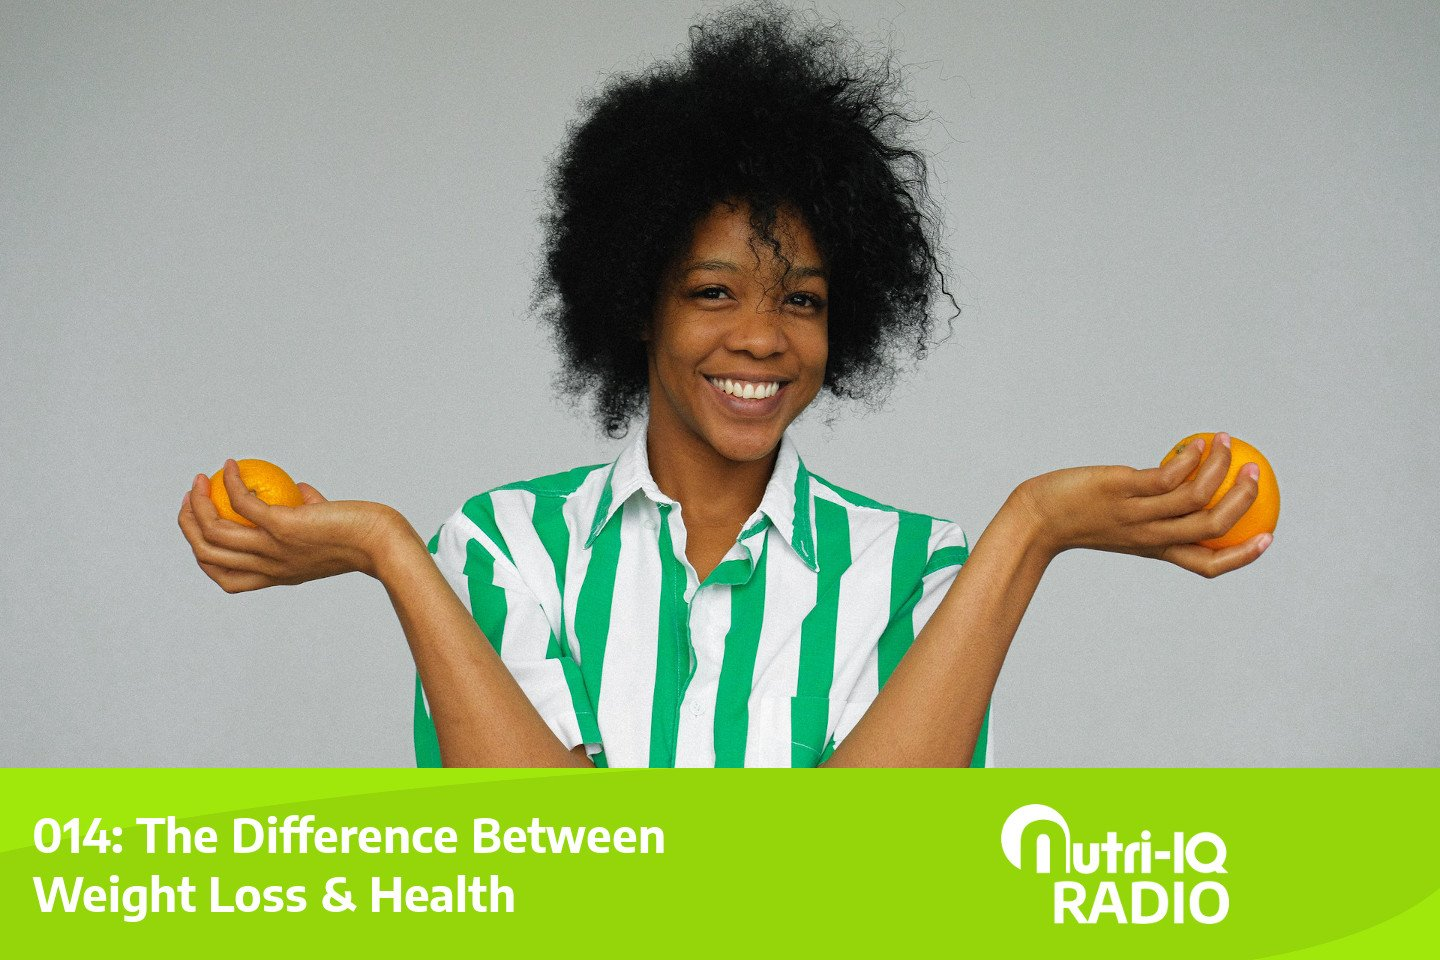 Podcast 014: The Difference Between Weight Loss & Health